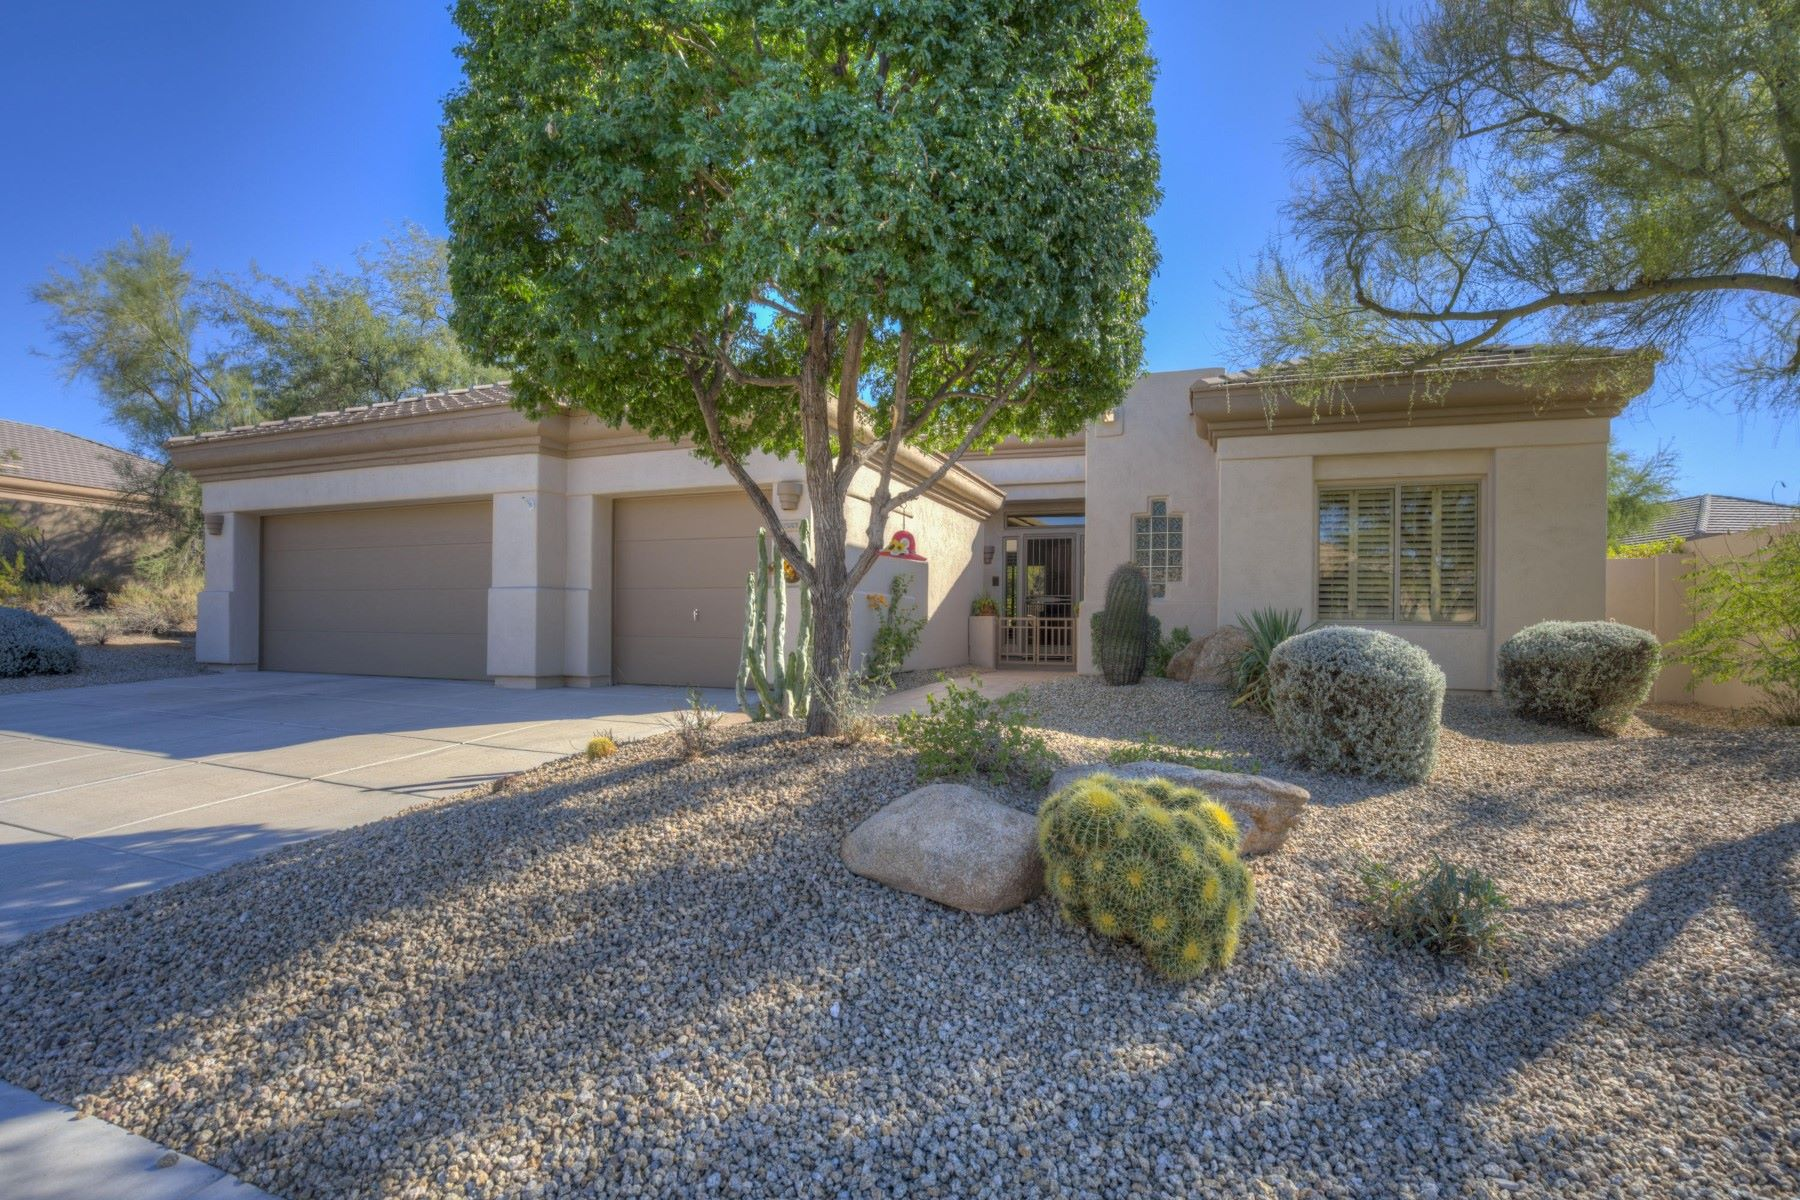 Maison unifamiliale pour l Vente à Spacious sought after Stella model in Terravita Country Club 6583 E Brilliant Sky Dr Scottsdale, Arizona, 85266 États-Unis